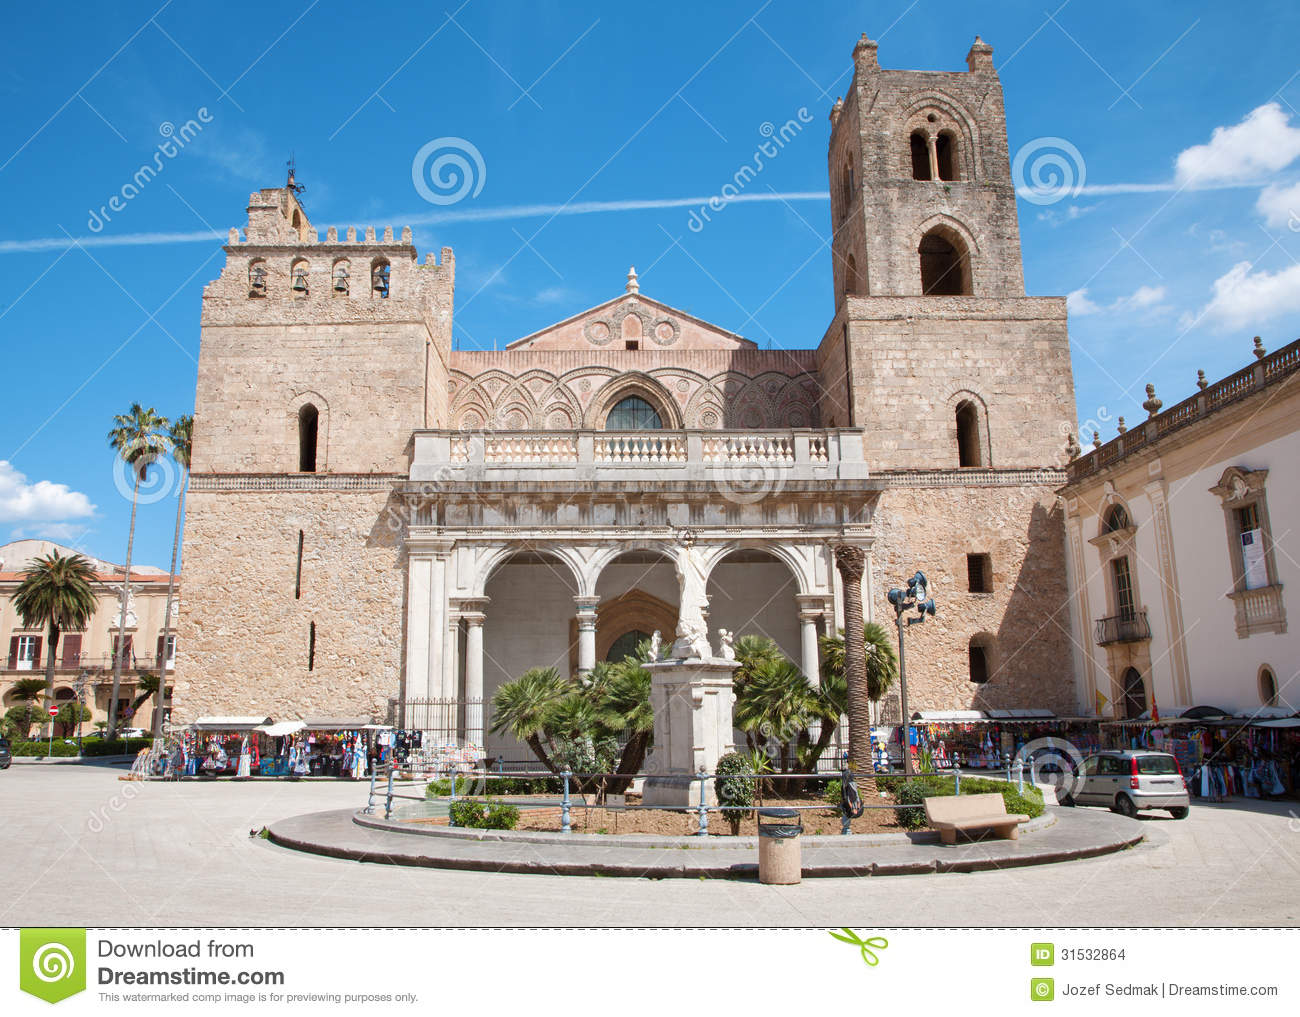 Palermo - Monreale cathedral